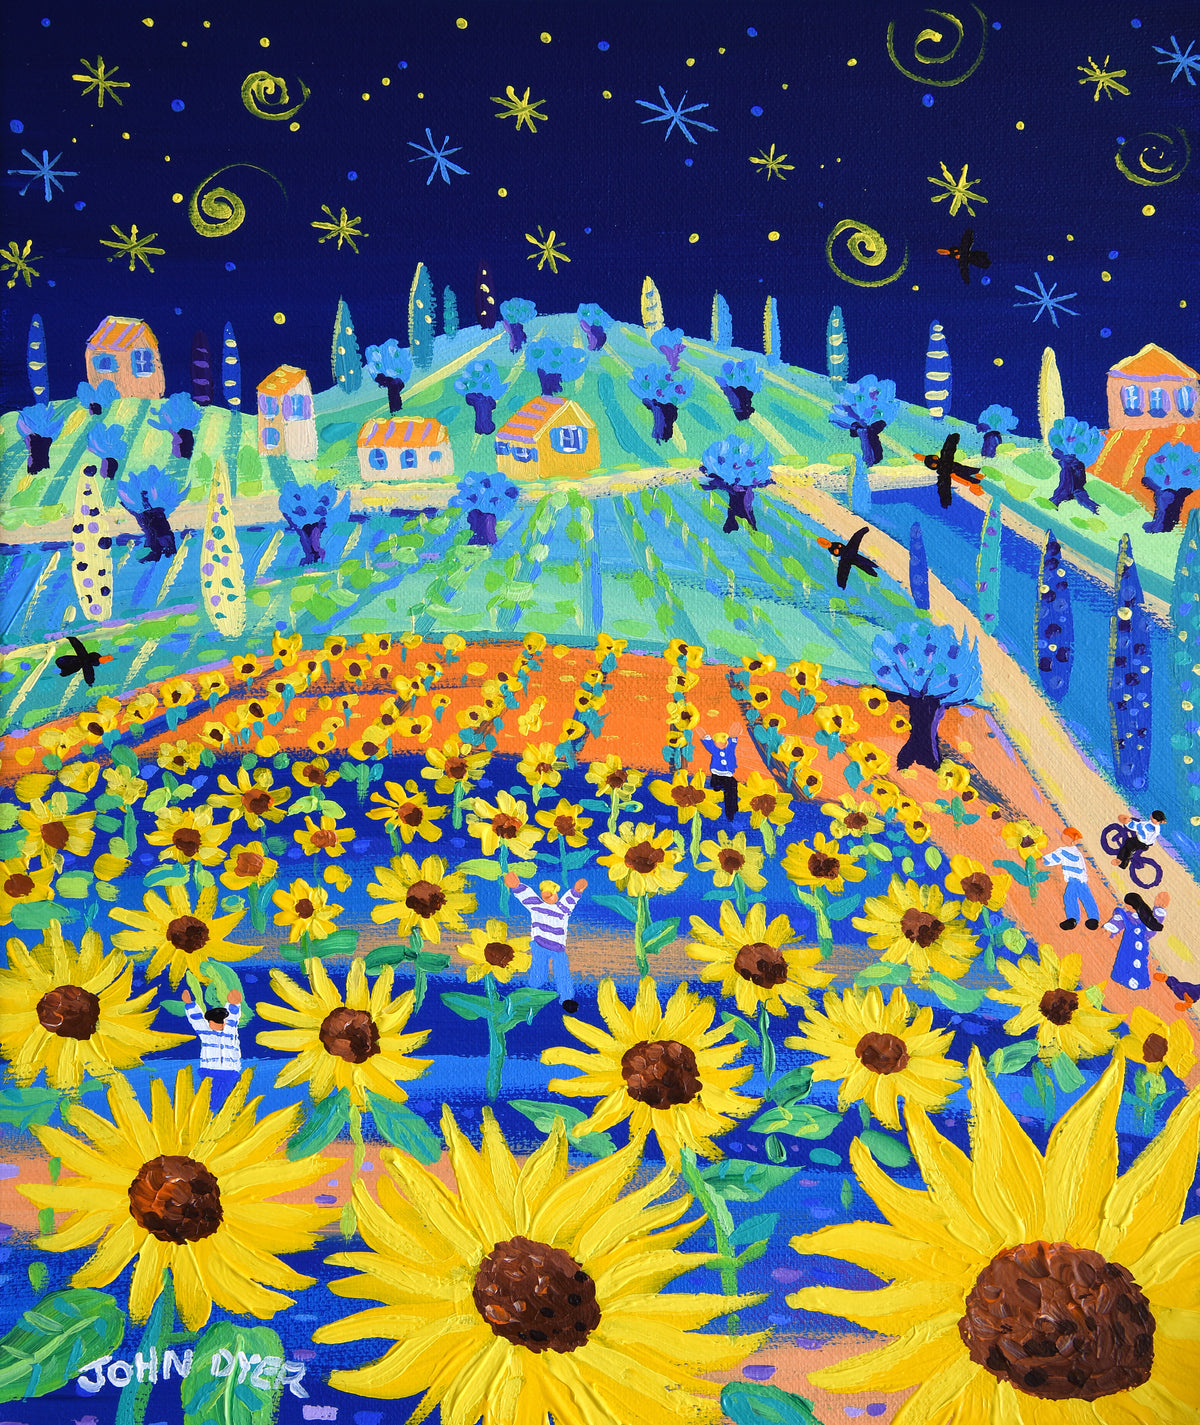 John Dyer Painting. Sunflowers and Stars. 12 x 10 inches acrylic on canvas